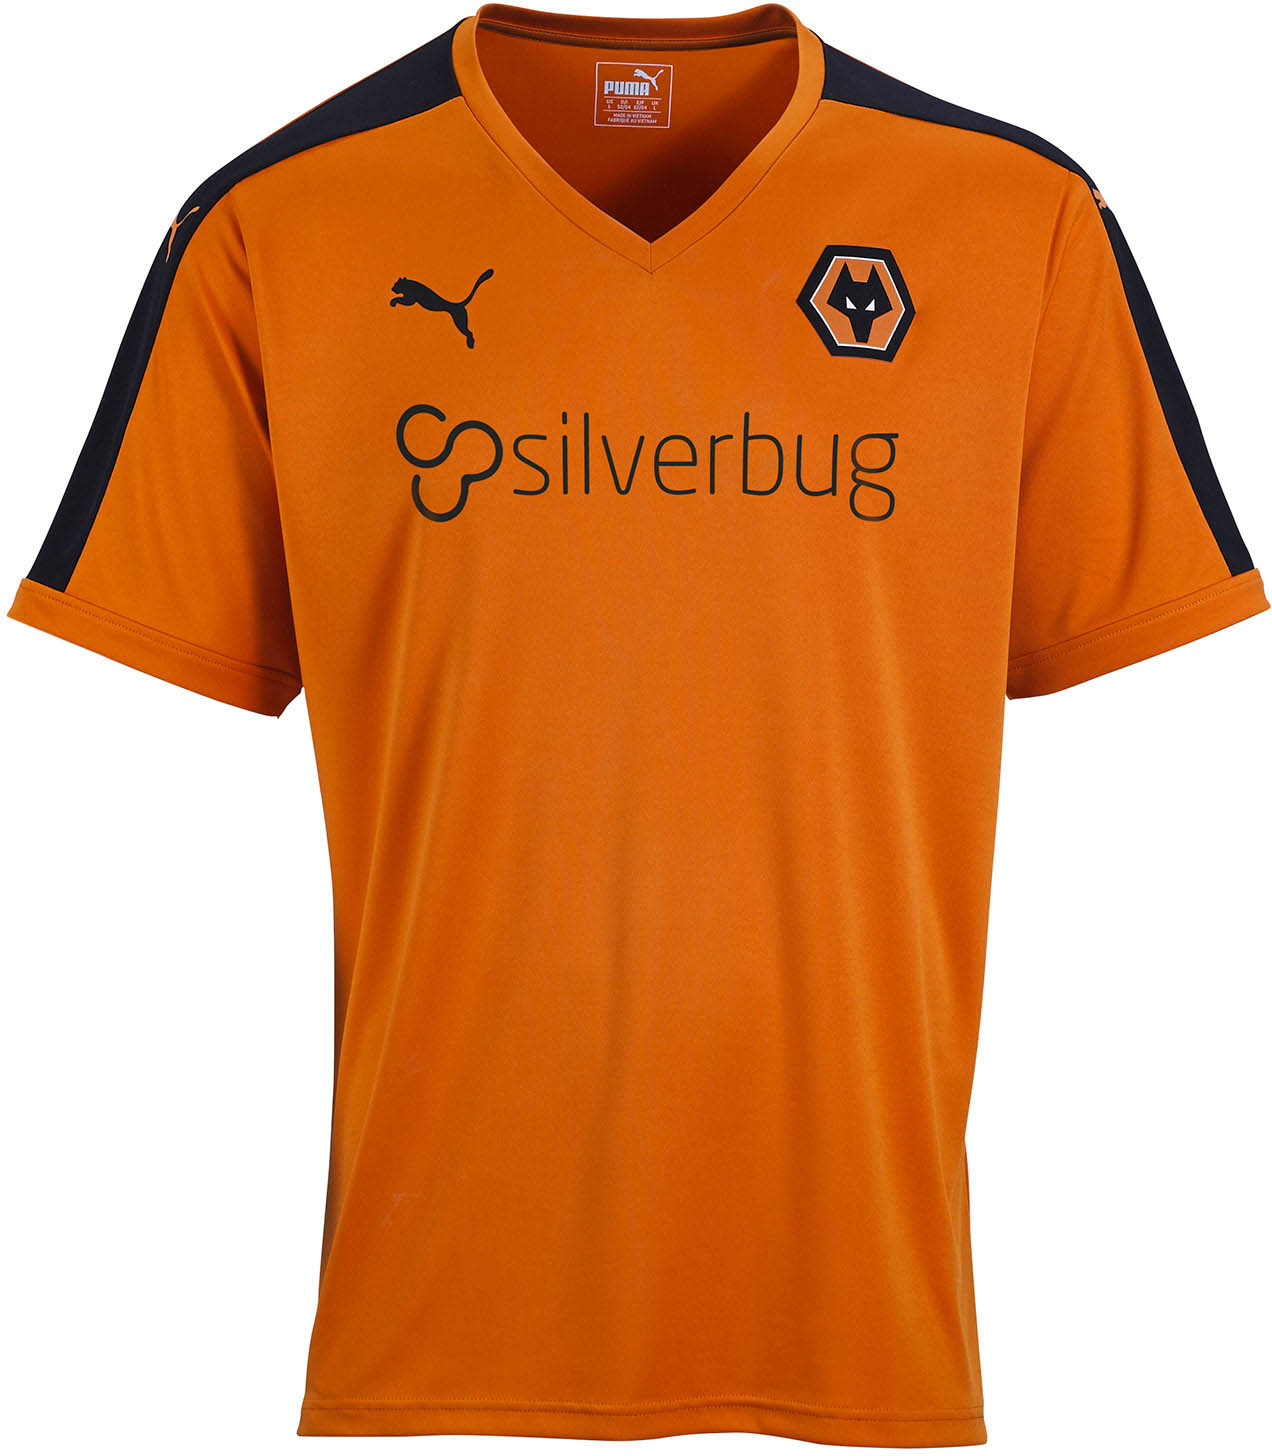 Wolves 15 16 kits released footy headlines for Timberwolves new logo shirt